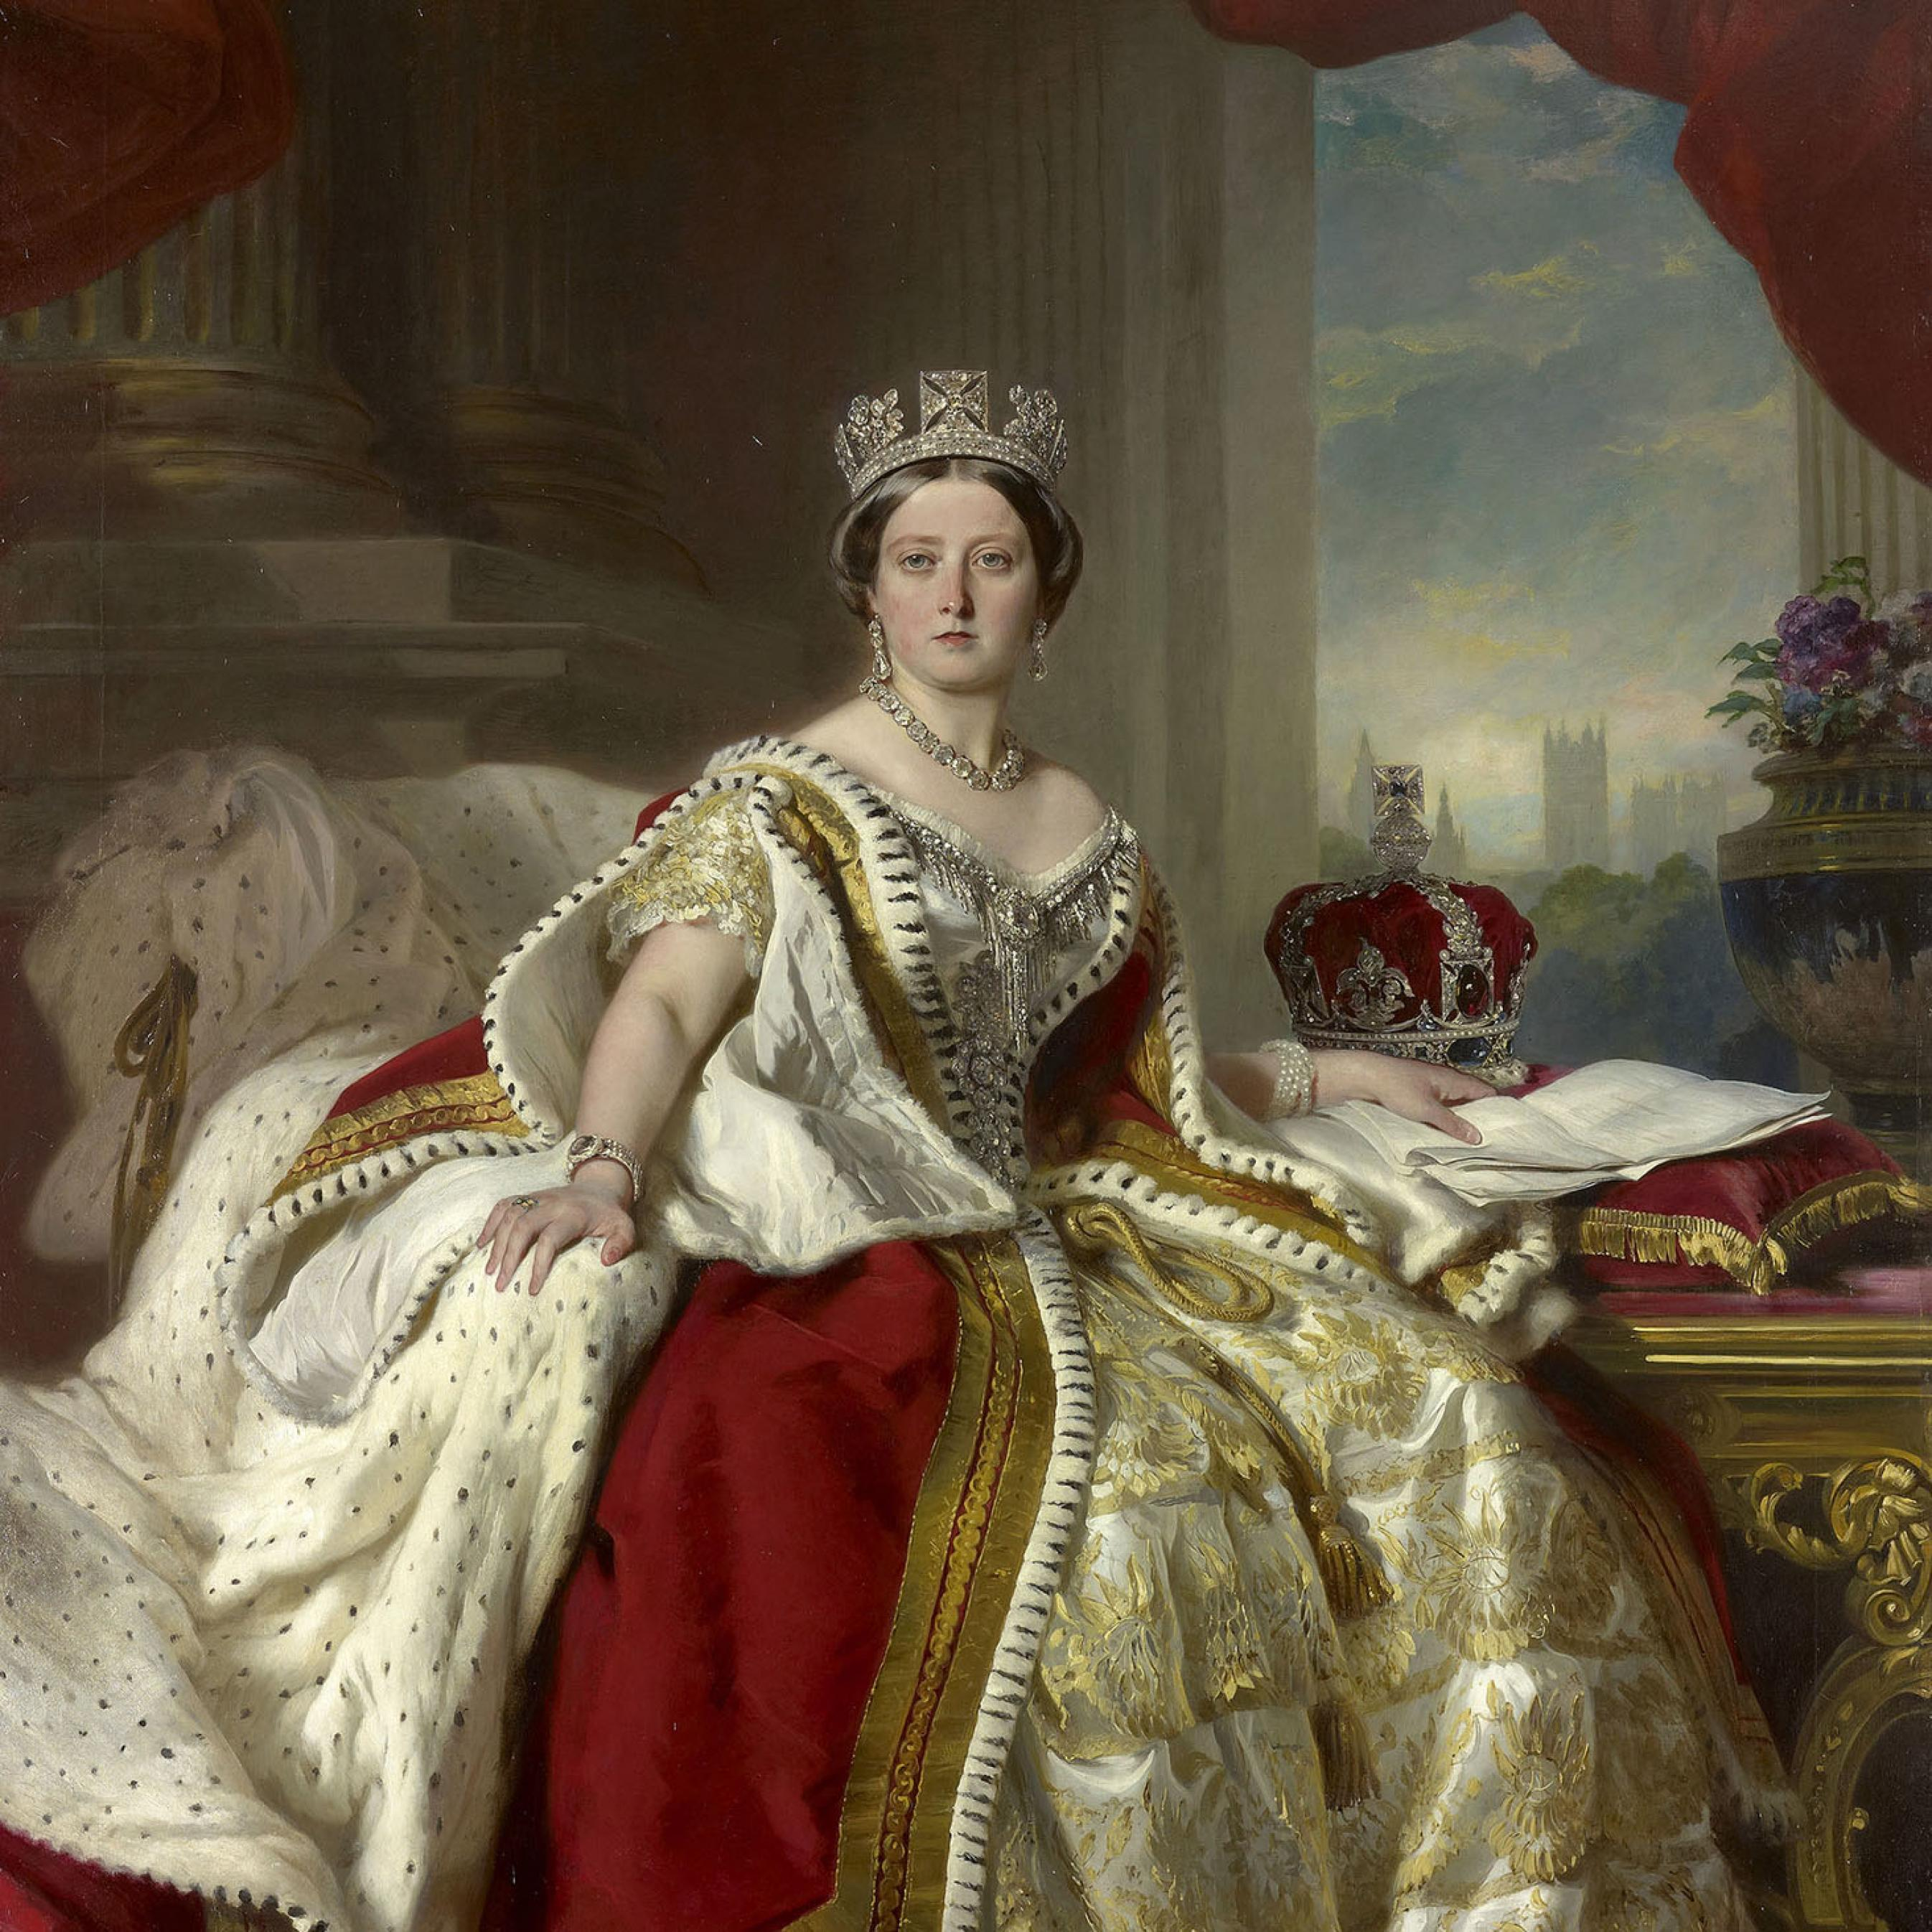 queen-victoria-at-the-table-the-original-influencer